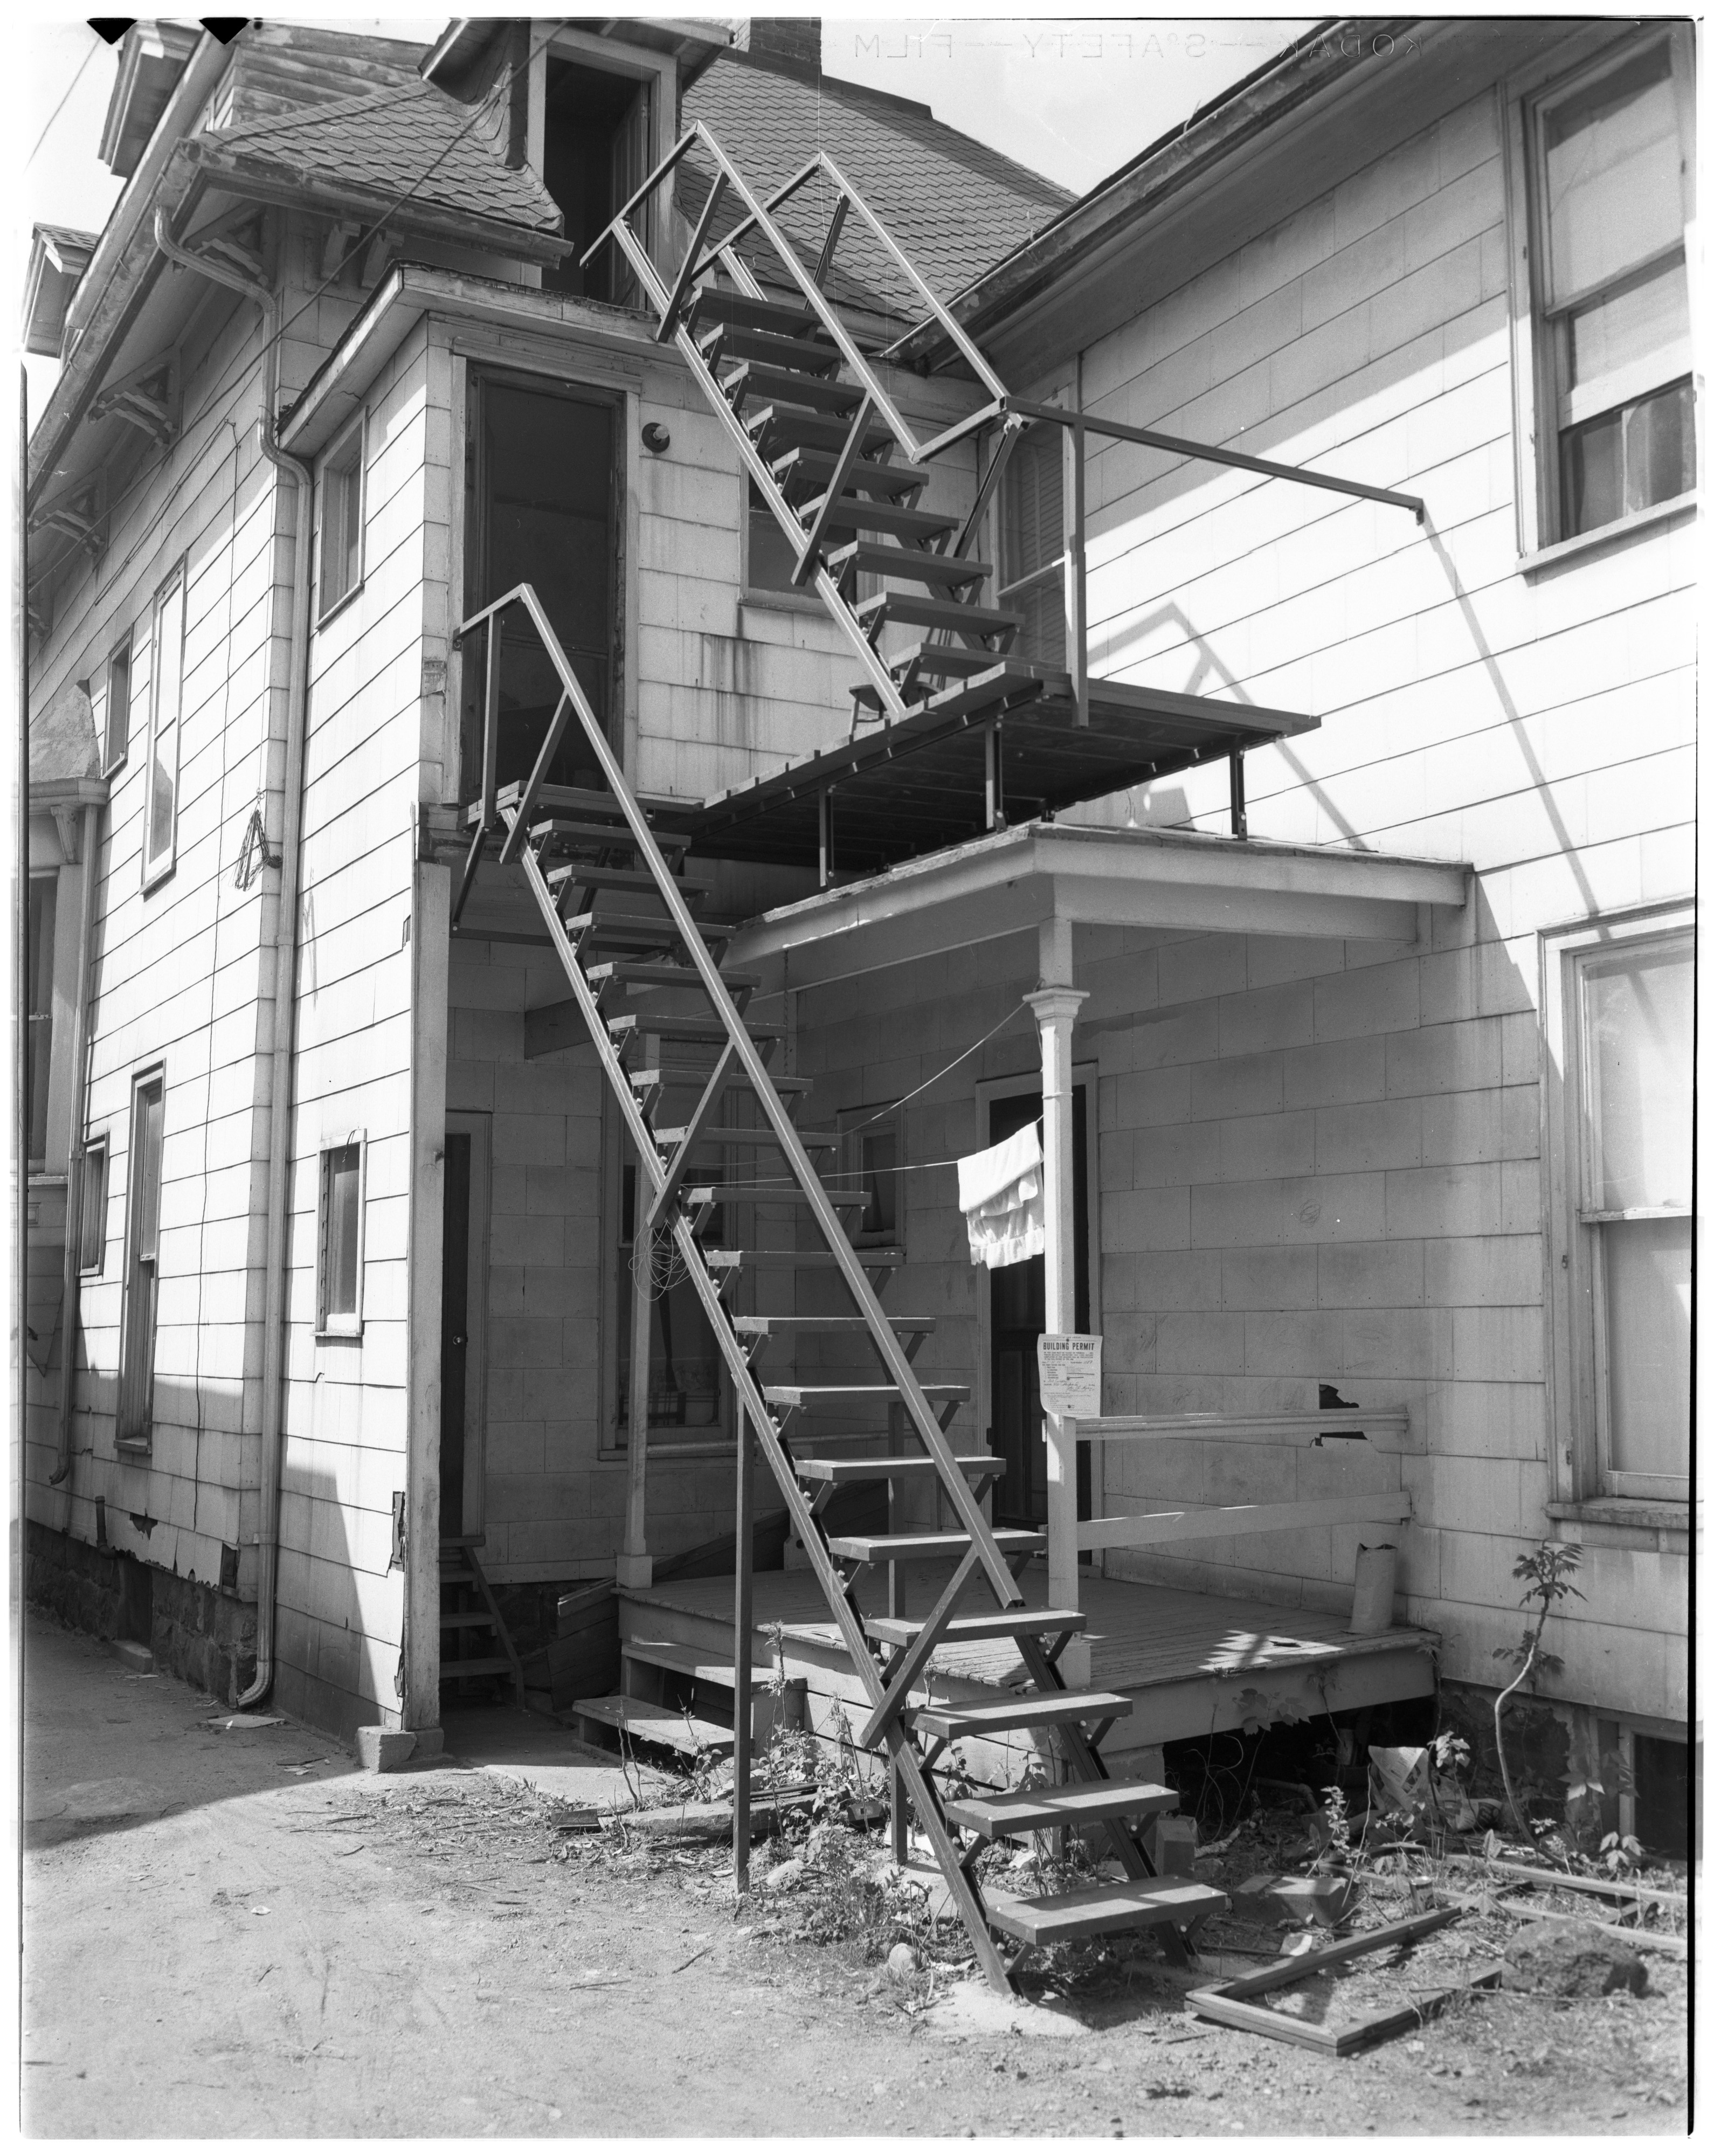 New Fire Escape at 331 Packard St., May 1955 image